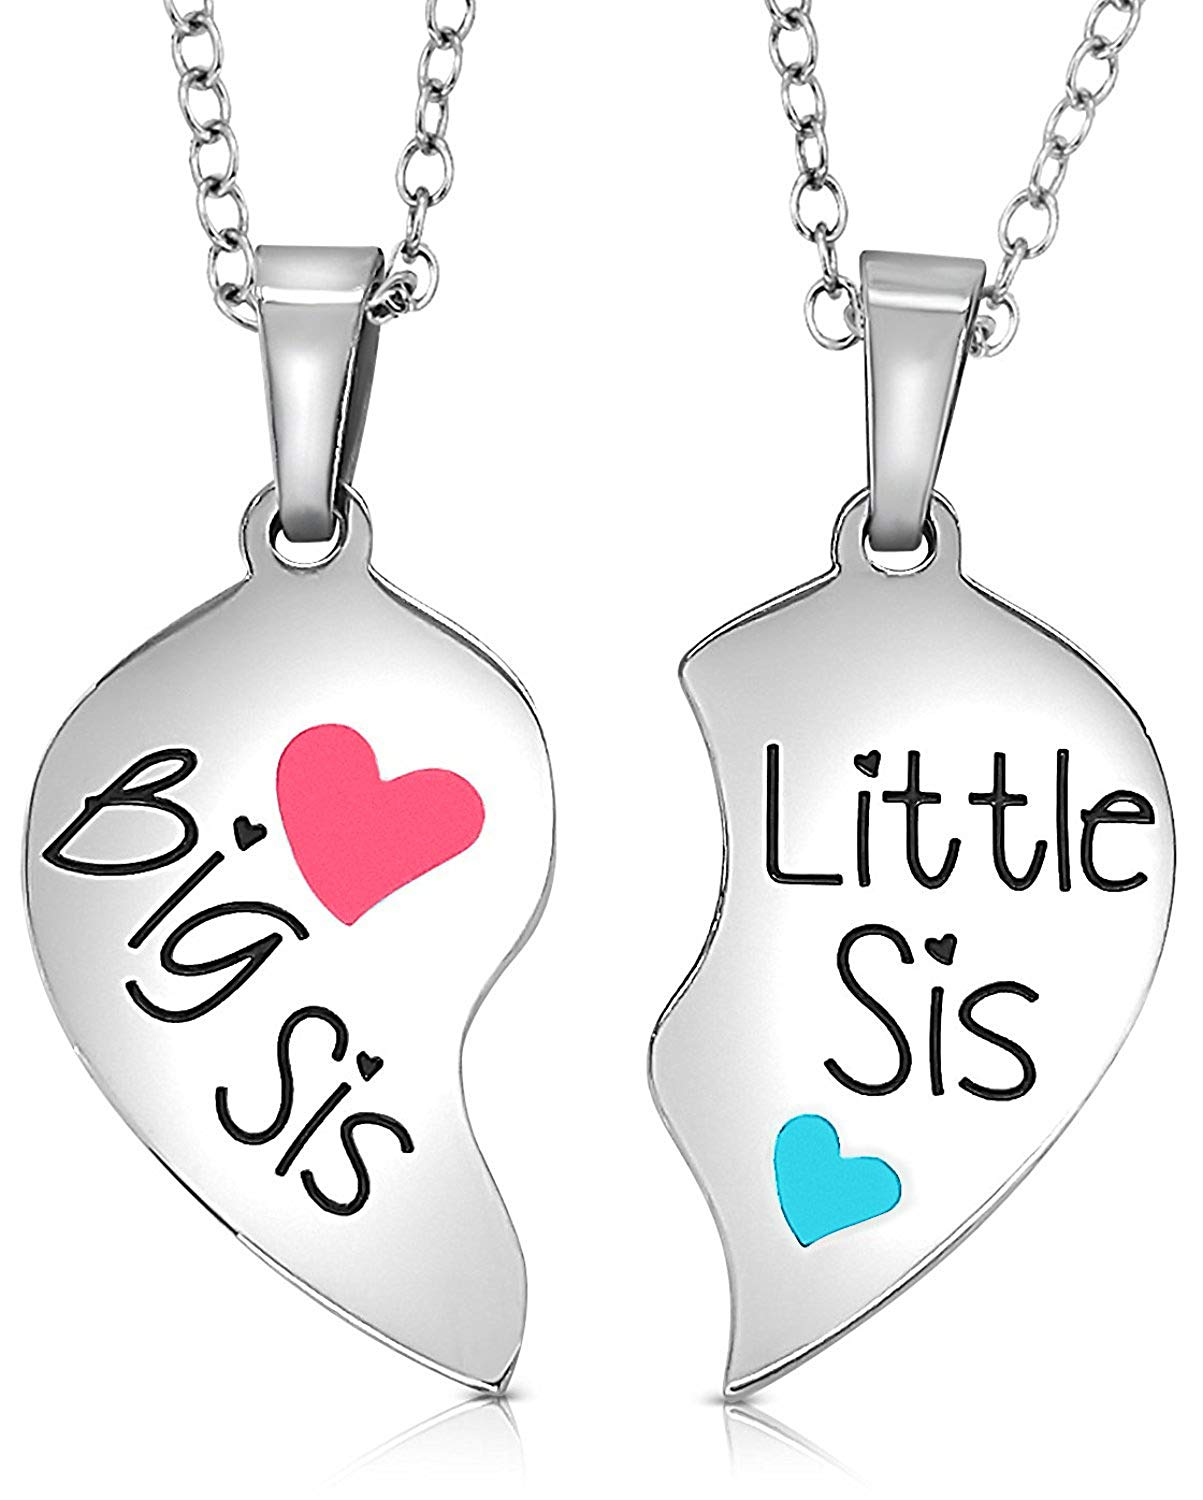 2cfa836691 Get Quotations · Set of 2 Piece Heart Halves Matching Big Sis Little Lil Sis  Sisters Necklace Jewelry Gift